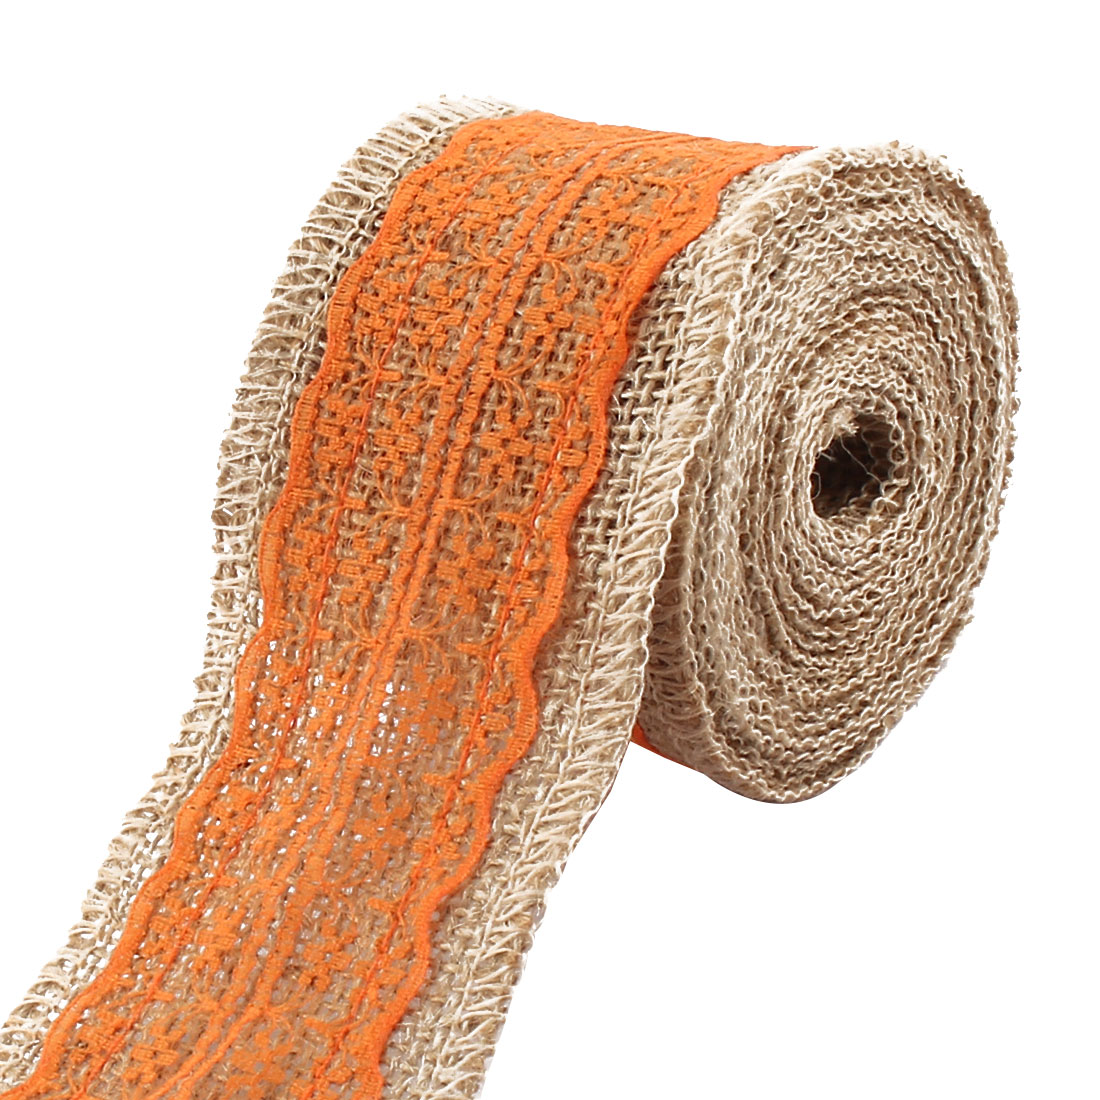 Unique Bargains Christmas Burlap DIY Gift Wrapping Packing Craft Ribbon Roll Tape Orange